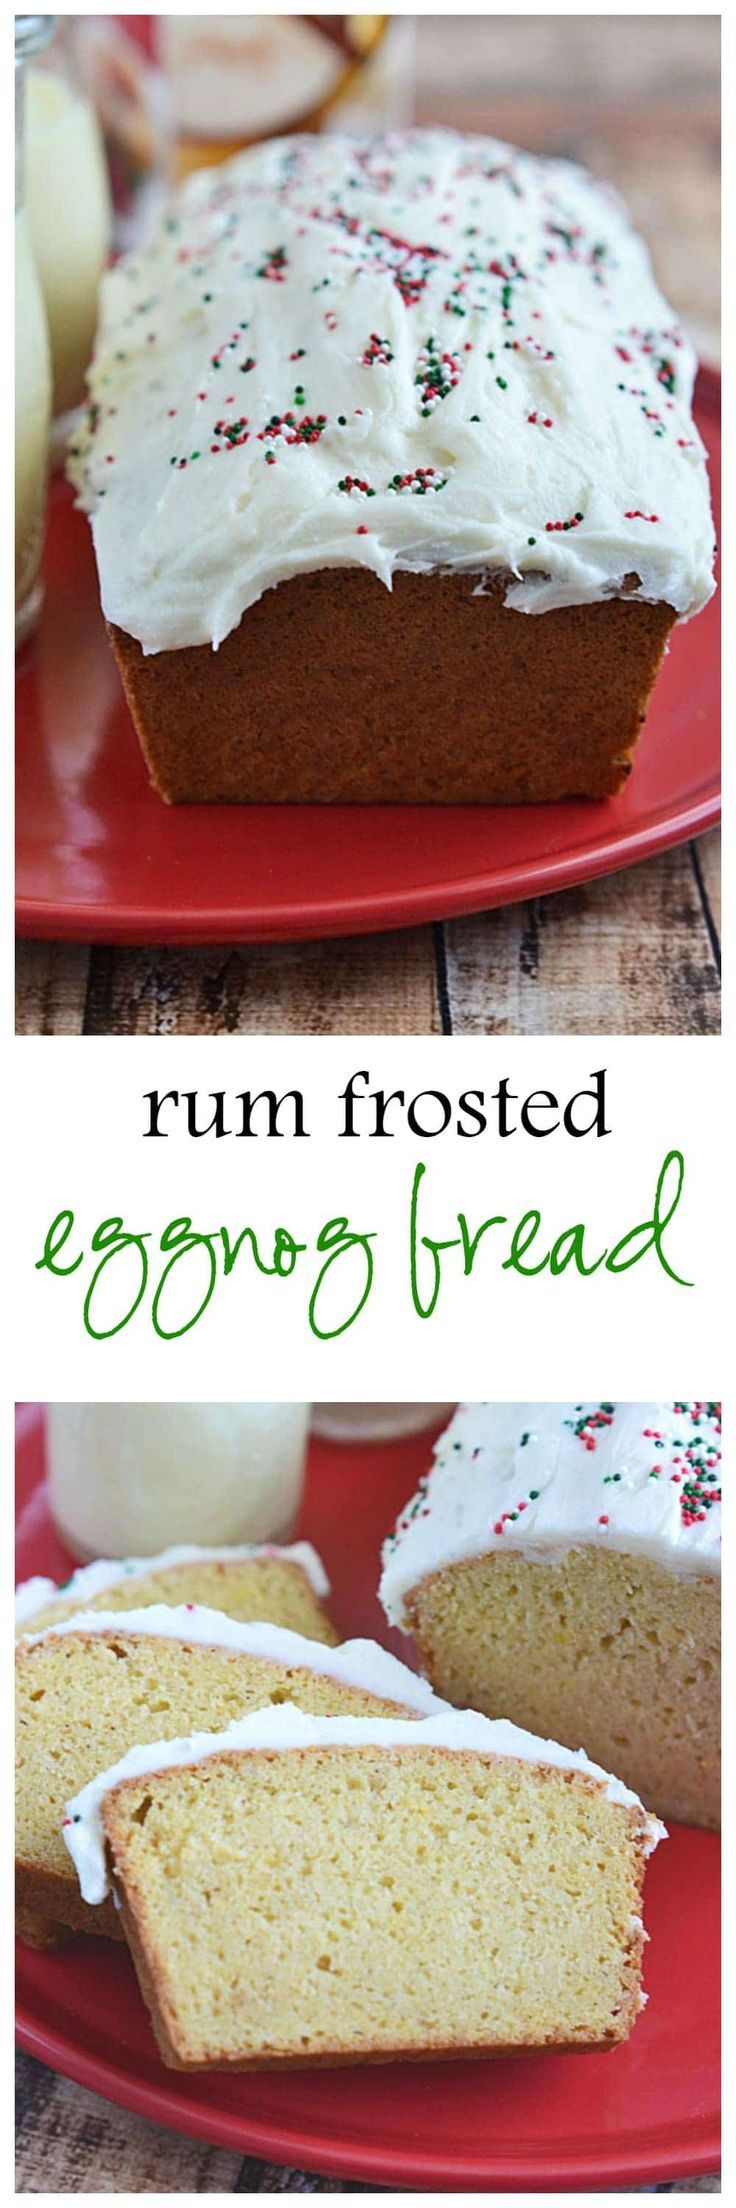 Packed with holiday flavors - eggnog, nutmeg, vanilla, and rum - this Rum Frosted Eggnog Bread is the perfect addition to your holiday breakfast table! | breakfast | holiday breakfast recipes | Christmas recipes | recipes with eggnog | homemade bread || Kitchen Meets Girl #breakfast #holidays